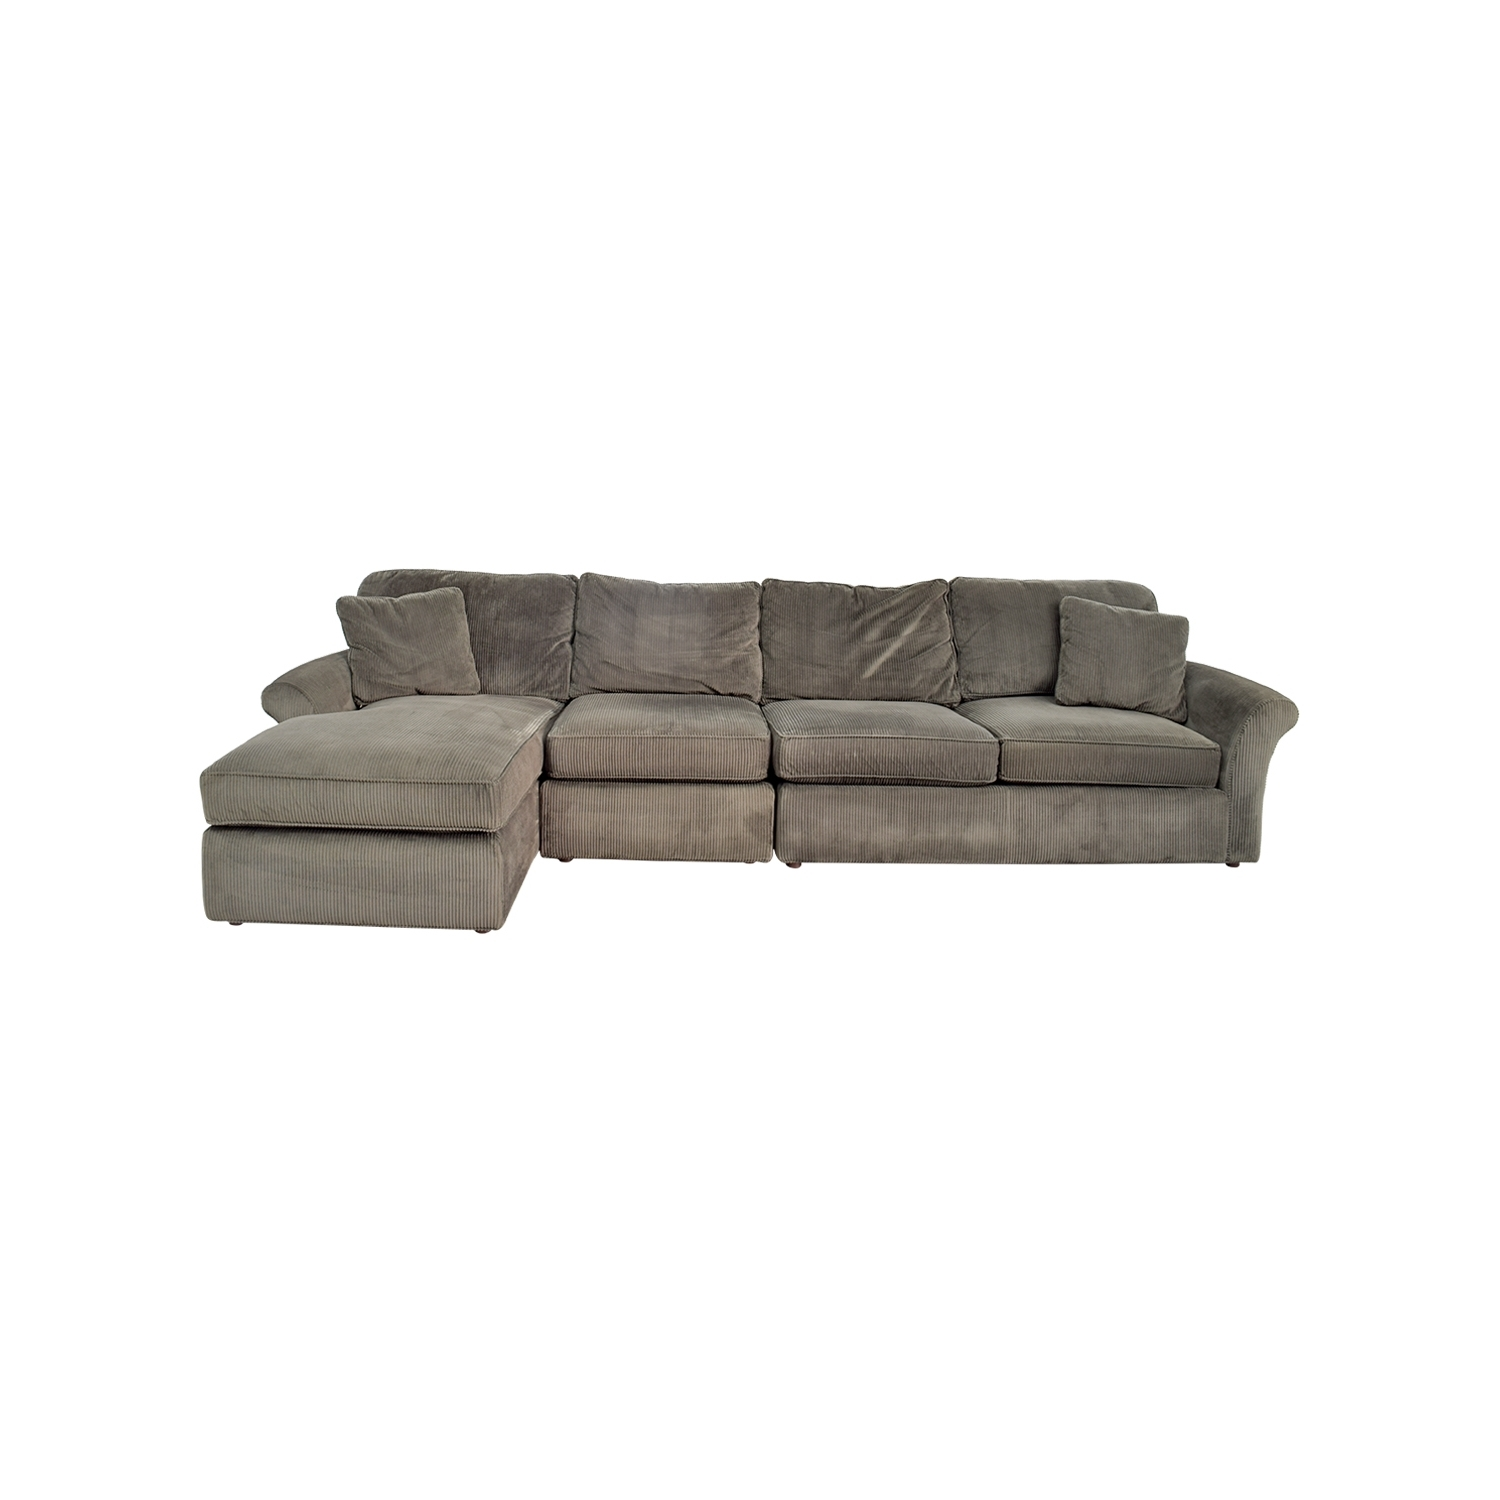 [%74% Off – Macy's Macy's Modern Concepts Charcoal Gray Corduroy Pertaining To Most Popular Modern Chaise Sofas|Modern Chaise Sofas Inside Famous 74% Off – Macy's Macy's Modern Concepts Charcoal Gray Corduroy|Most Up To Date Modern Chaise Sofas Pertaining To 74% Off – Macy's Macy's Modern Concepts Charcoal Gray Corduroy|Fashionable 74% Off – Macy's Macy's Modern Concepts Charcoal Gray Corduroy With Regard To Modern Chaise Sofas%] (View 1 of 15)